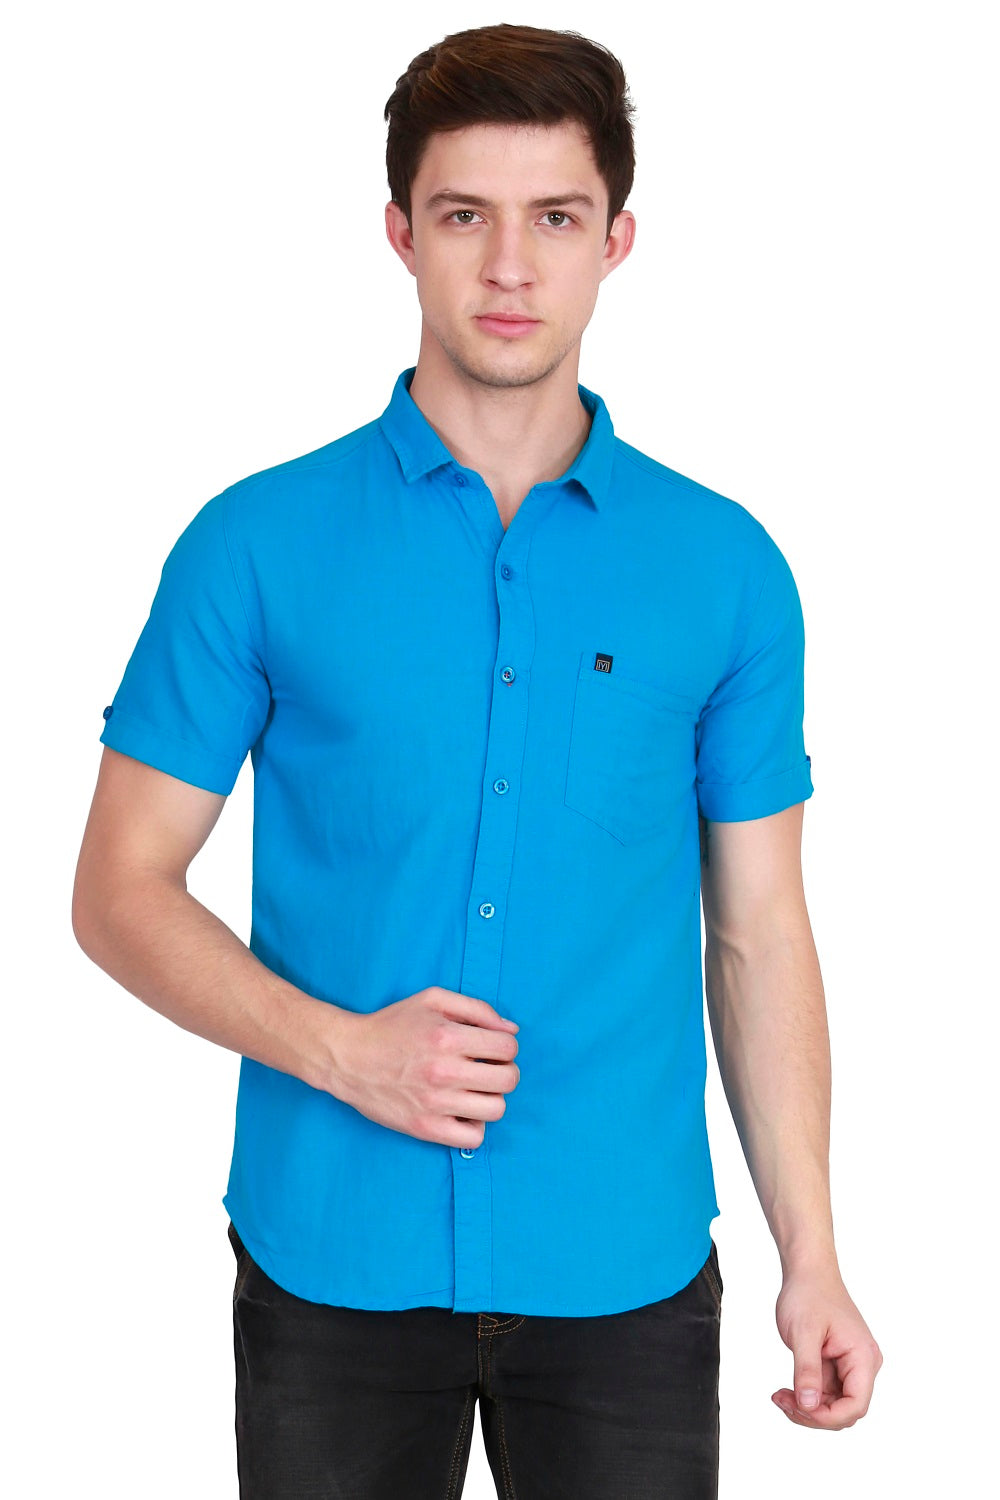 IMYOUNG Men's Solid Blue Cotton Linen Casual Shirt